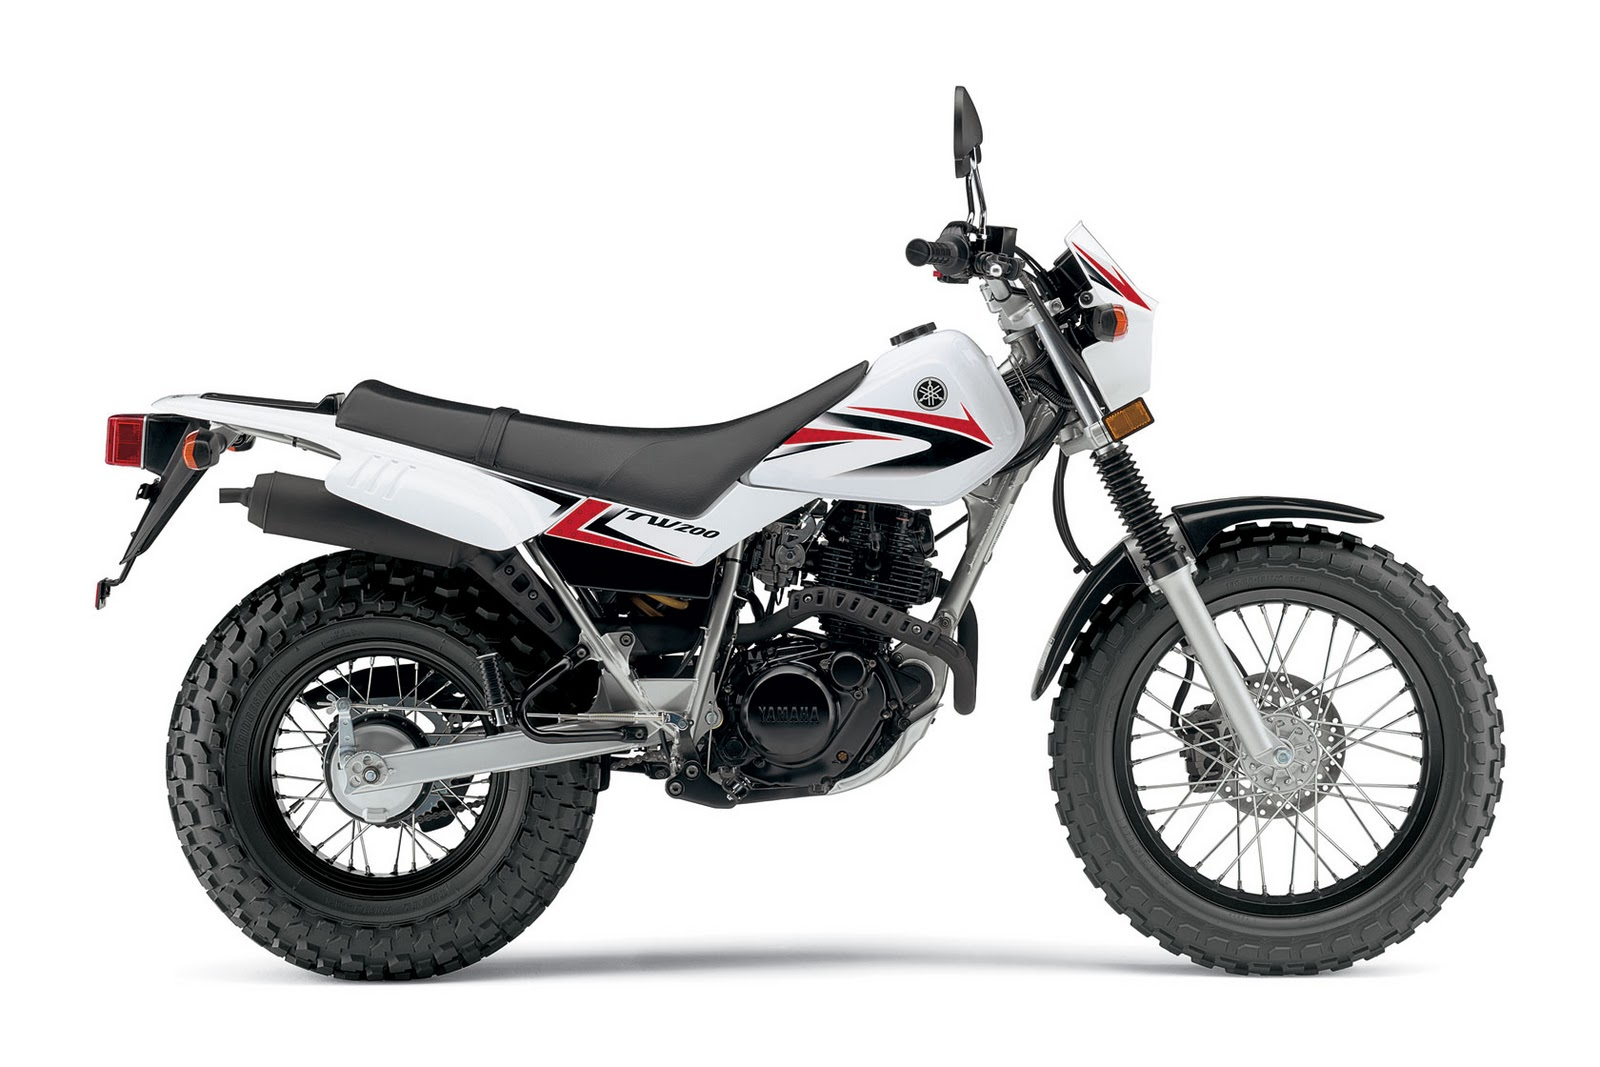 Motorcycle Pictures: Yamaha TW200 - 2011